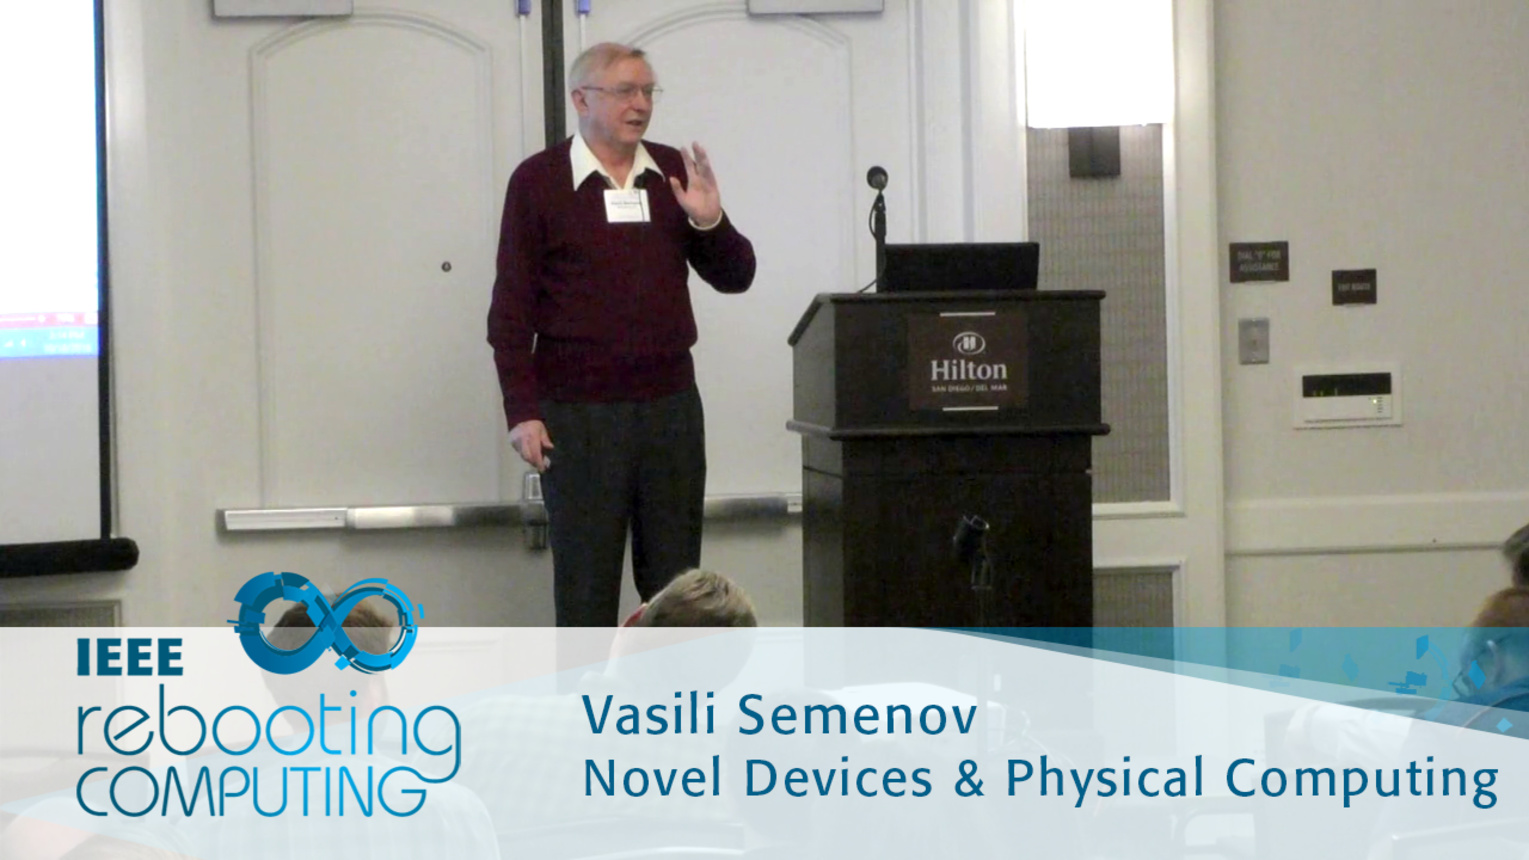 Erasing Logic-Memory Boundaries in Superconductor Electronics - Vasili Semenov: 2016 International Conference on Rebooting Computing